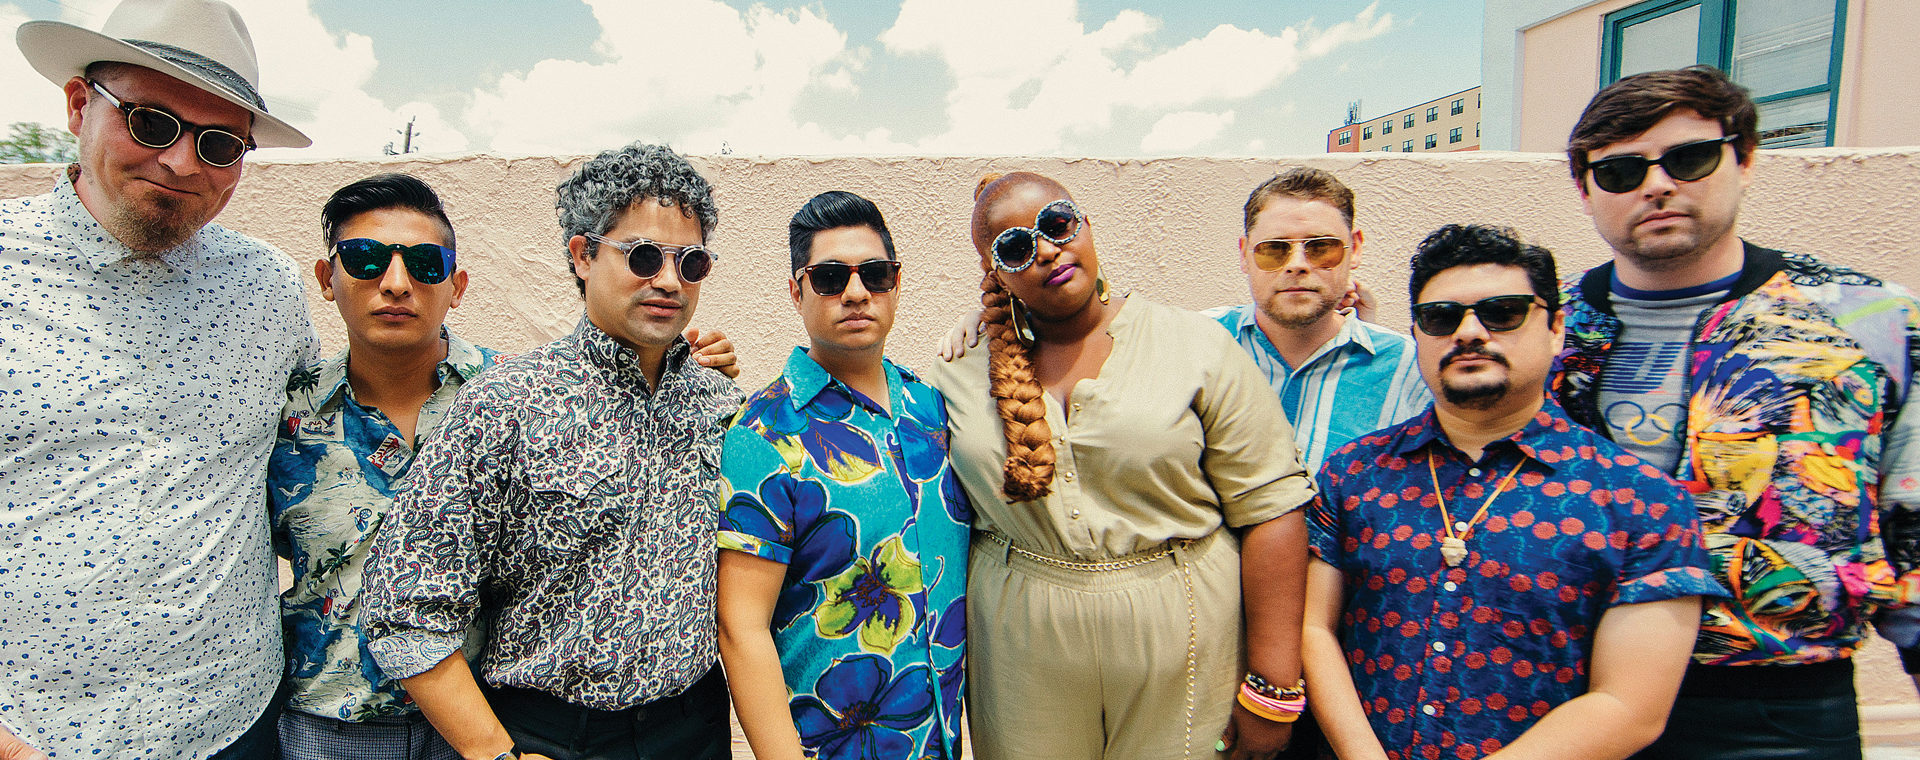 LATEST ISSUE <br><b>The Suffers</b></br>